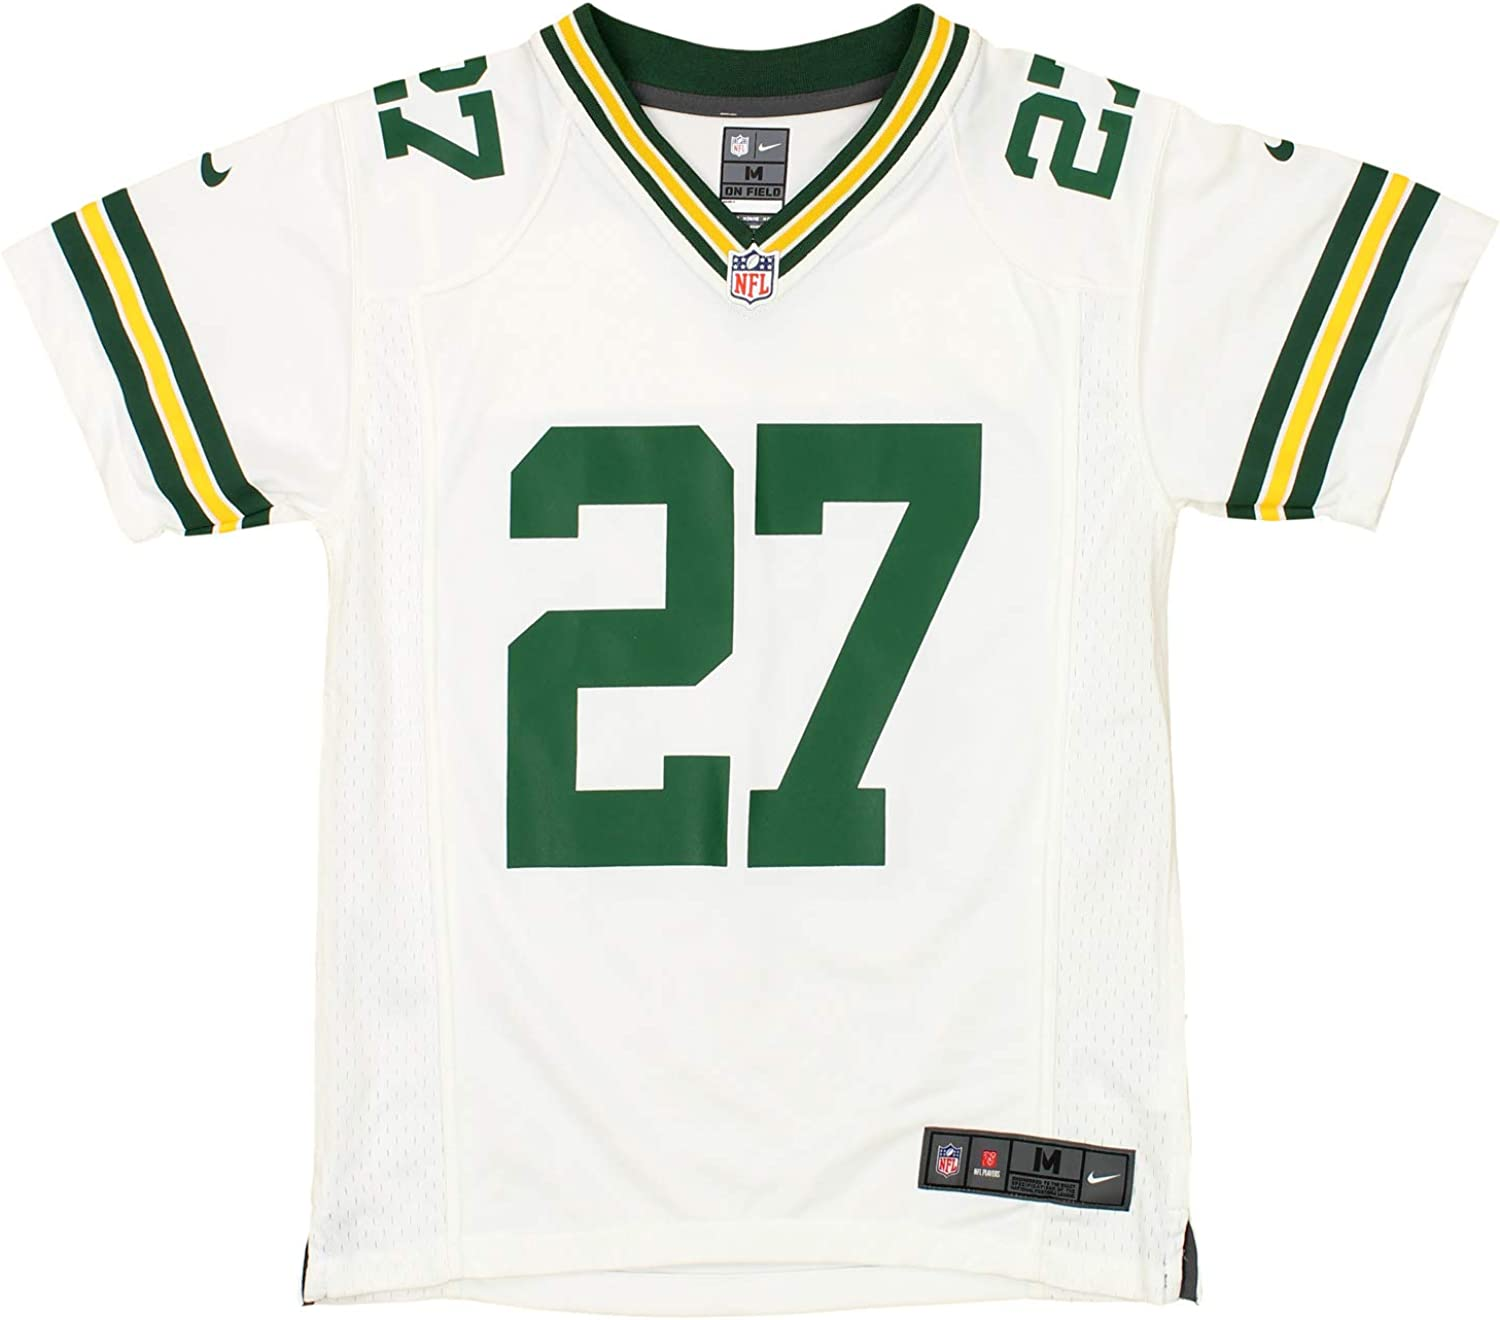 Outerstuff NFL Youth Boys Green Bay Packers Eddie Lacy Player Jersey, White